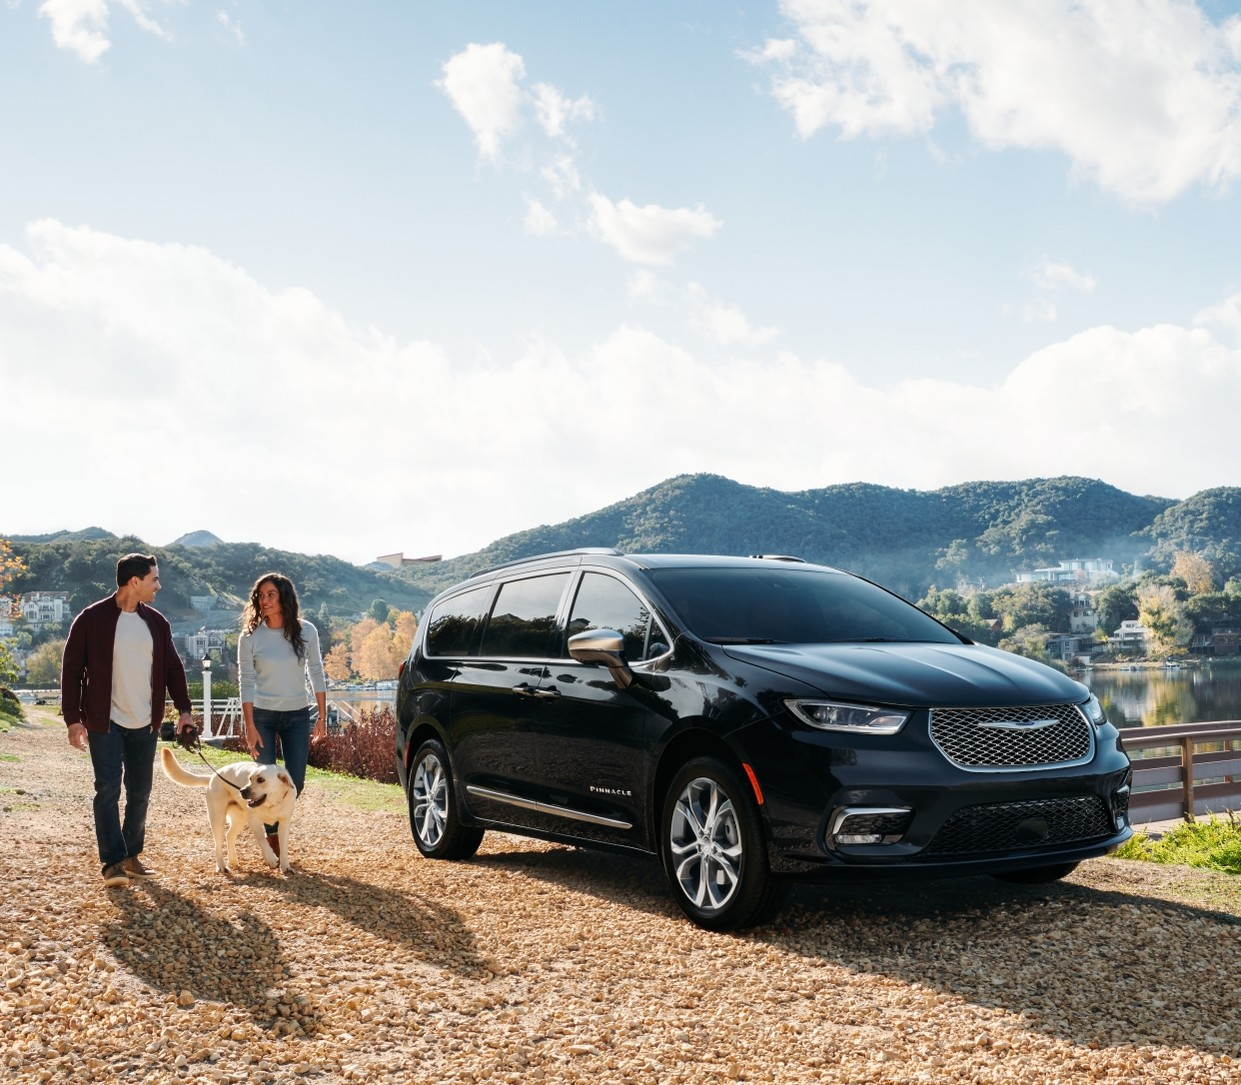 The new 2021 Chrysler Pacifica parked near a lake with mountains behind